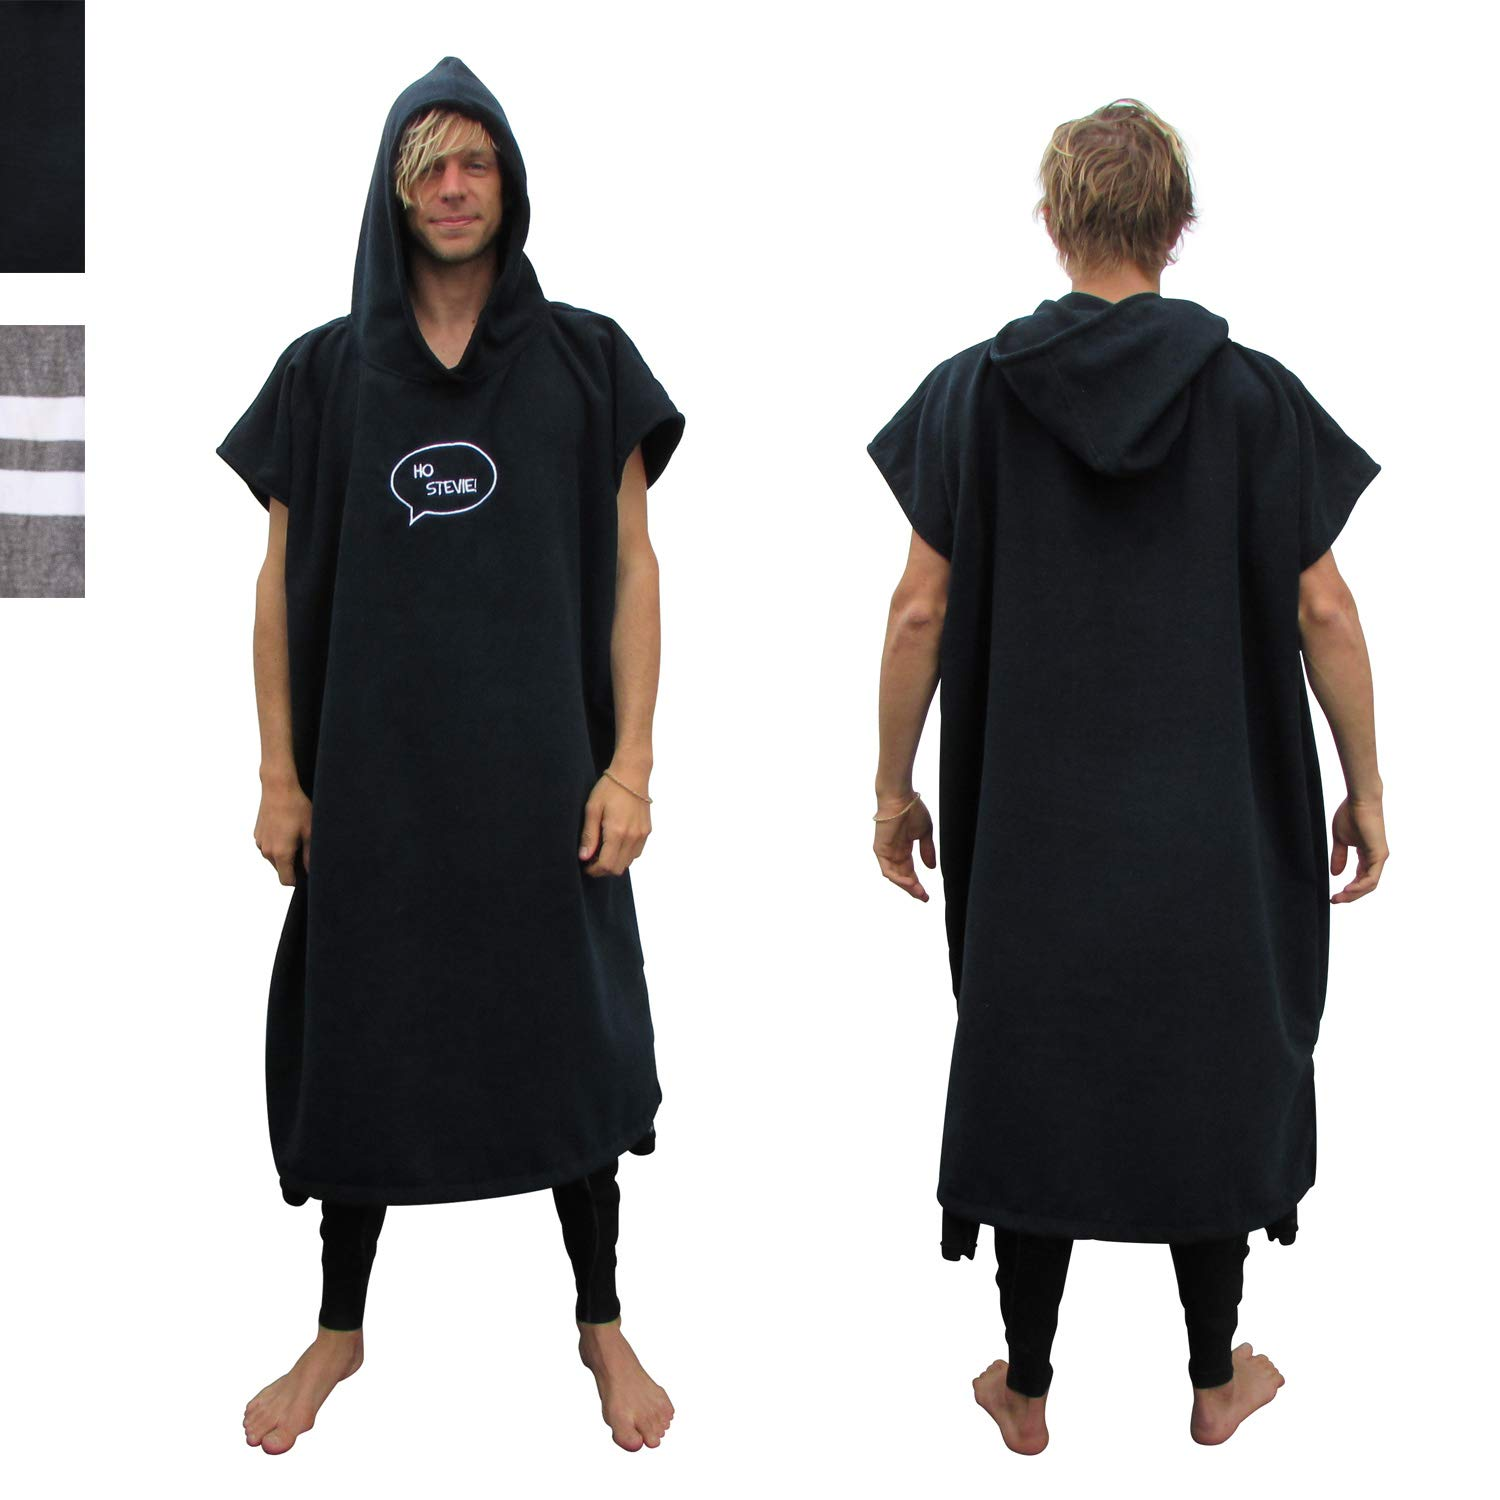 d7c13ca5f4 Thick microfiber surf poncho wetsuit changing robe towel choose color black  sports outdoors jpg 1500x1500 Wetsuit